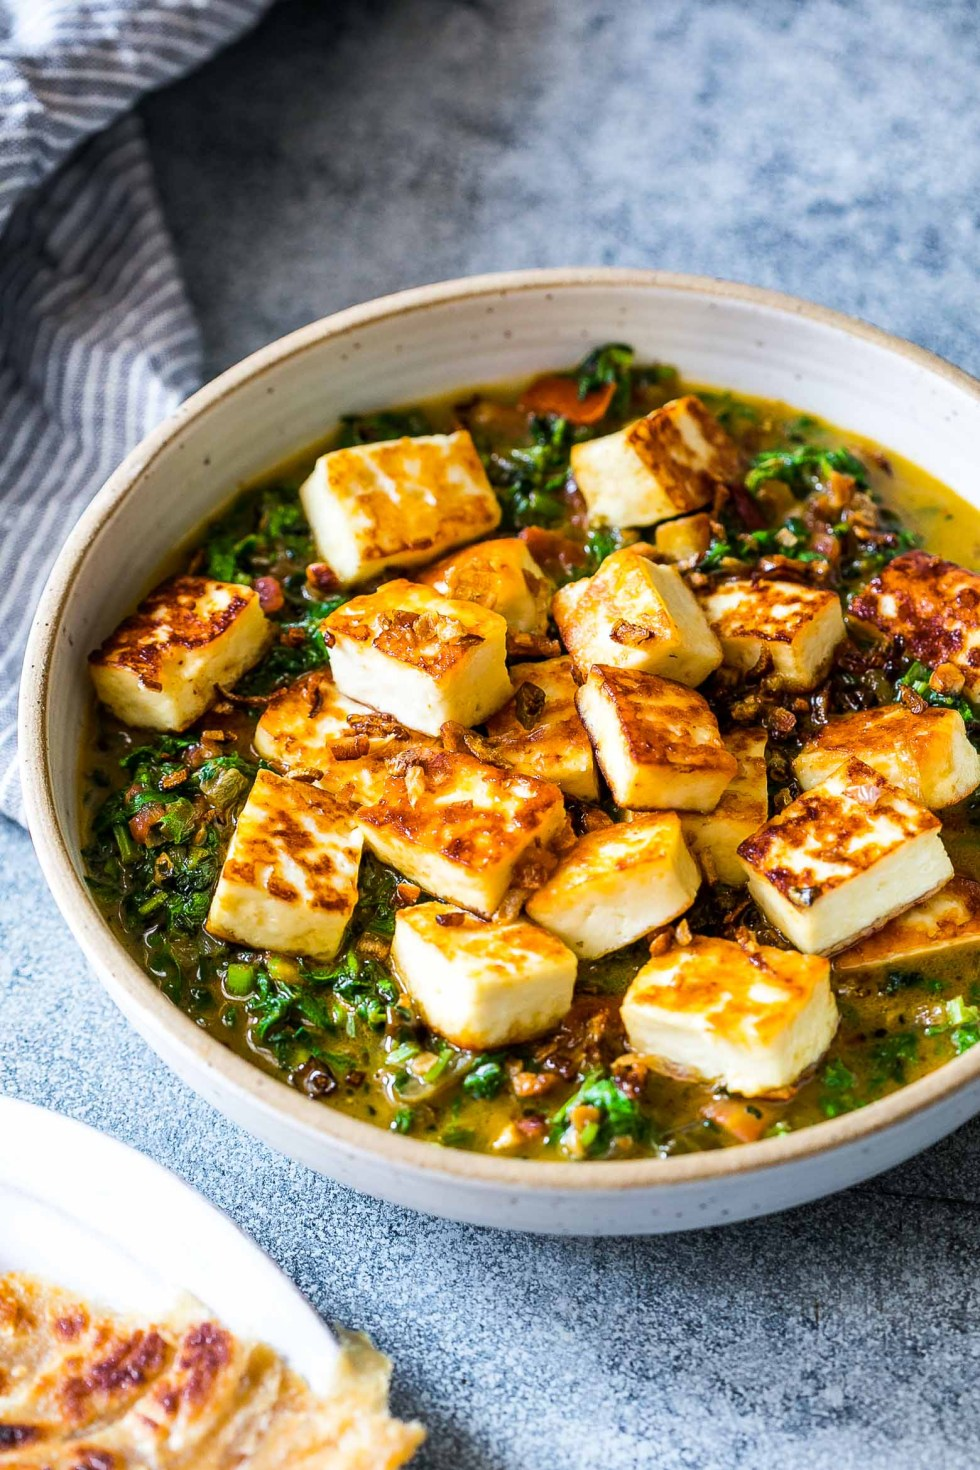 You are going to love this healthy saag paneer which is an easy, Indian recipe thats full of flavour and uses a combination of mustard greens or arugula and spinach. It's gluten free, ready in 30 minutes and is perfect with naan or parathas.